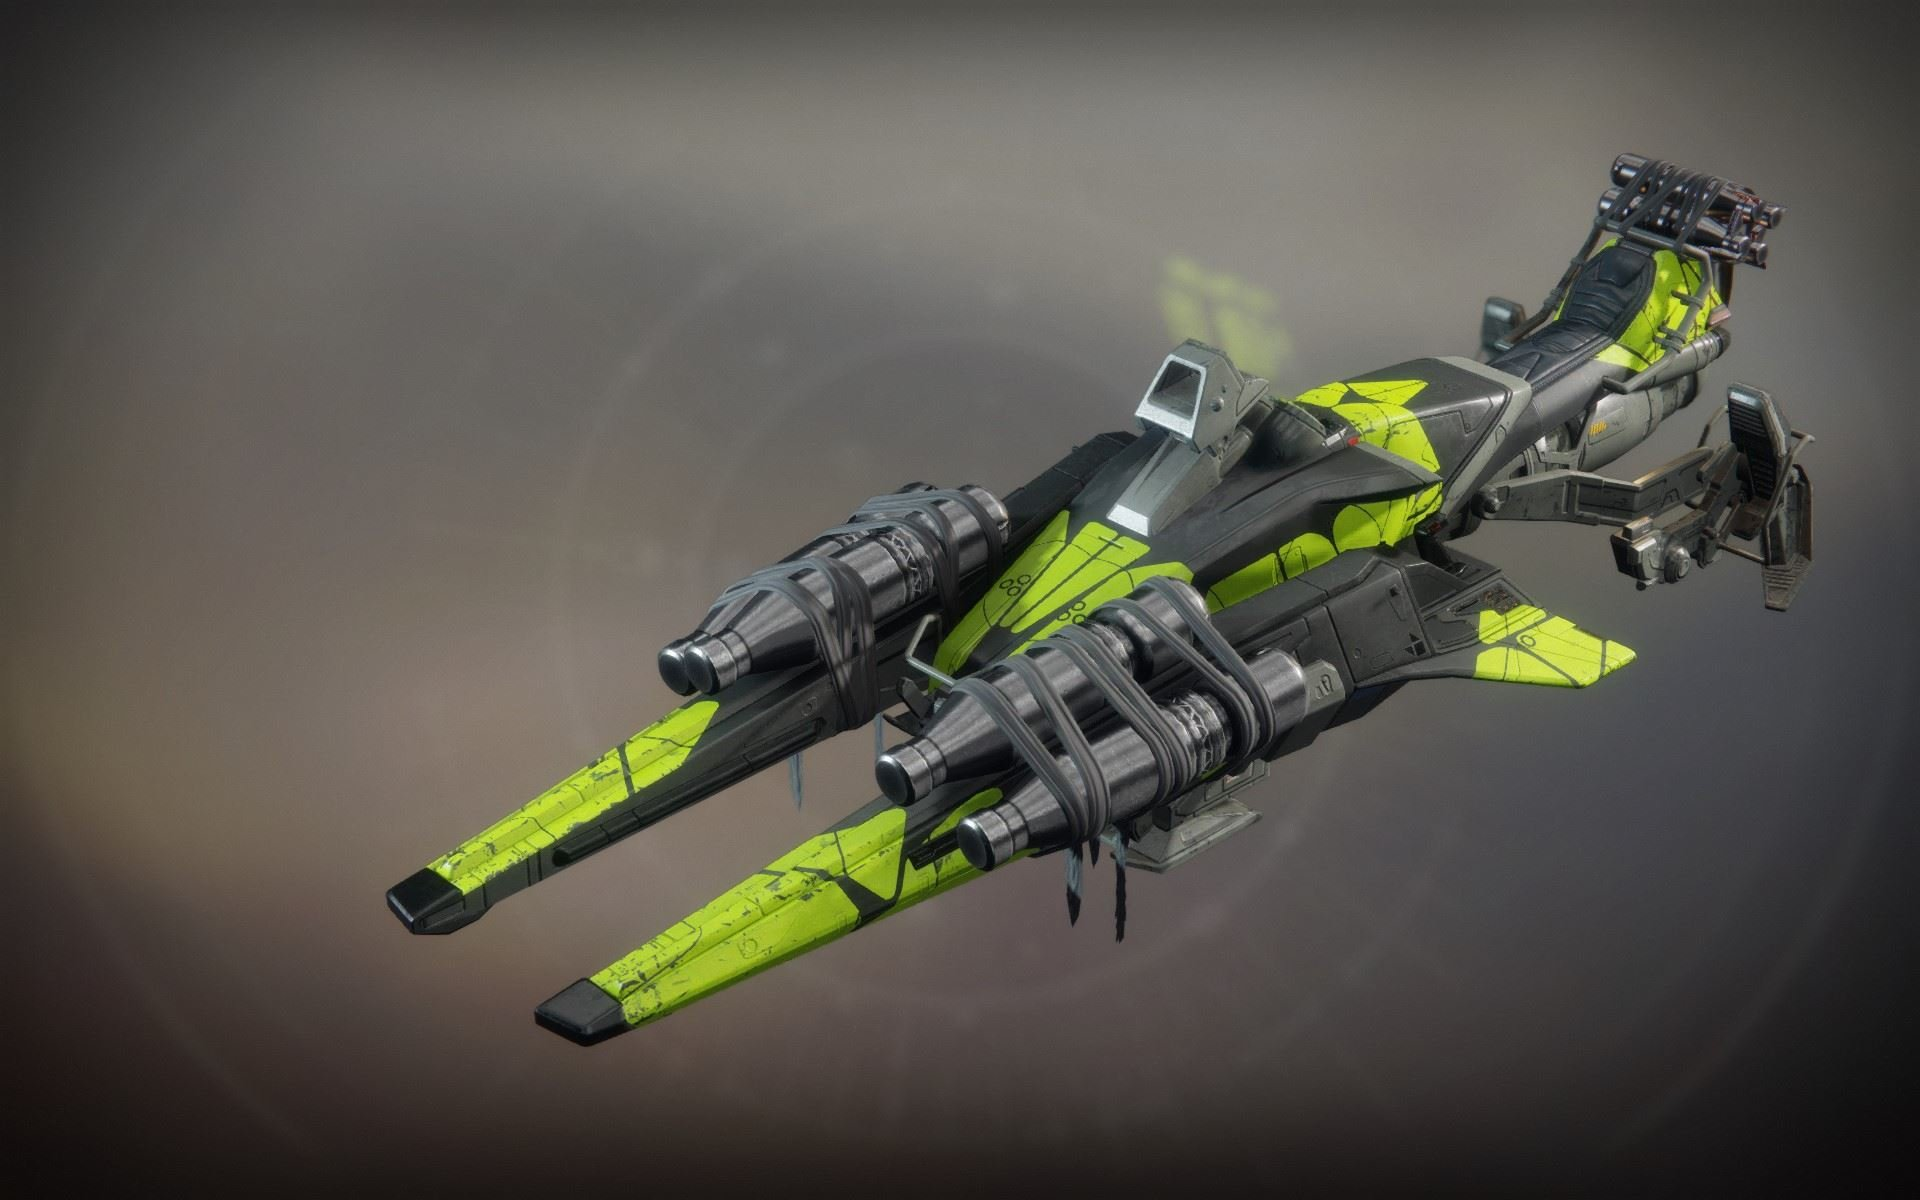 An in-game render of the Tilt Fuse.